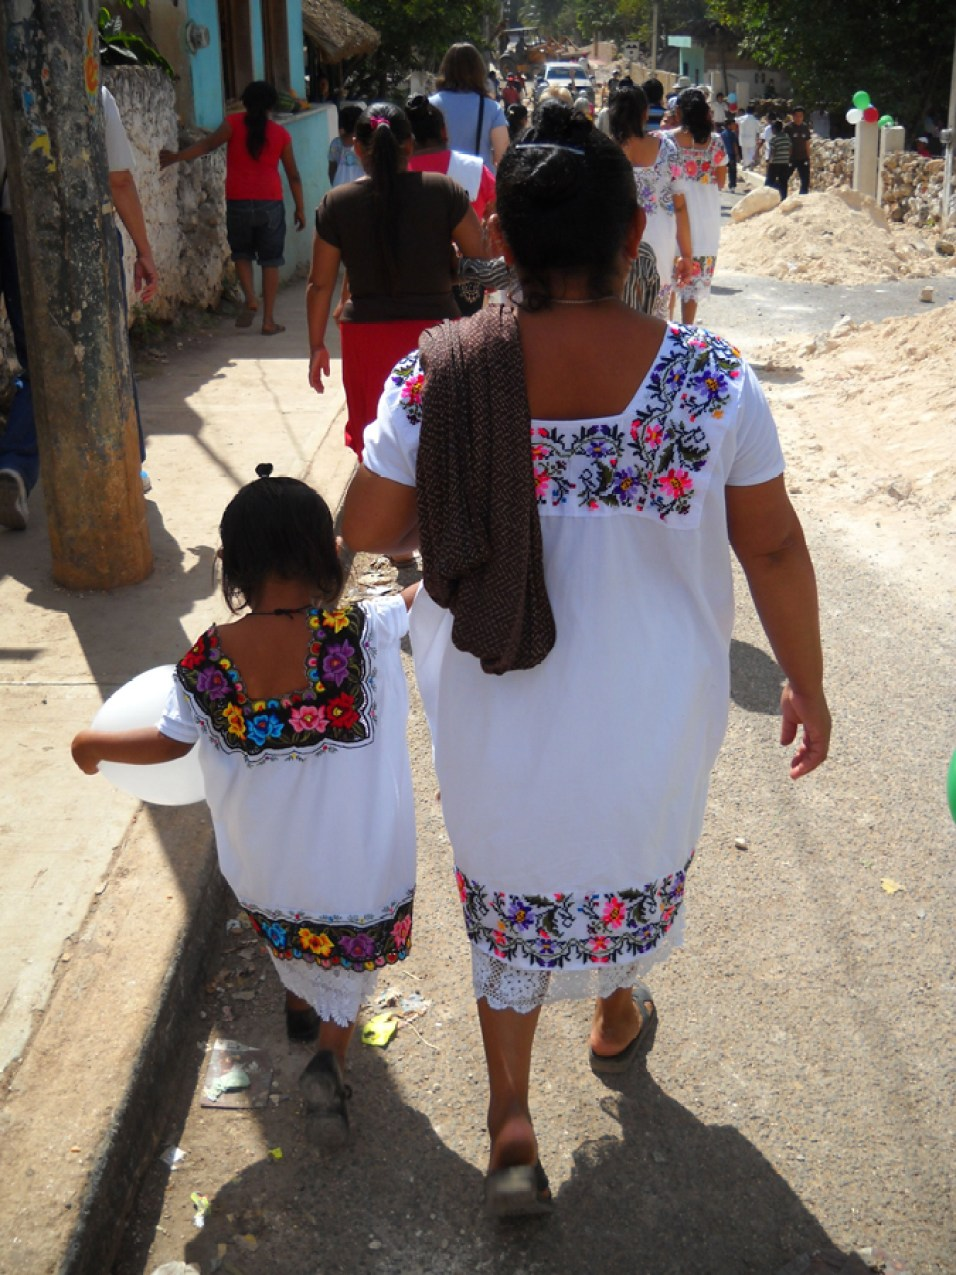 Mother and daughter in Merida, Mexico.